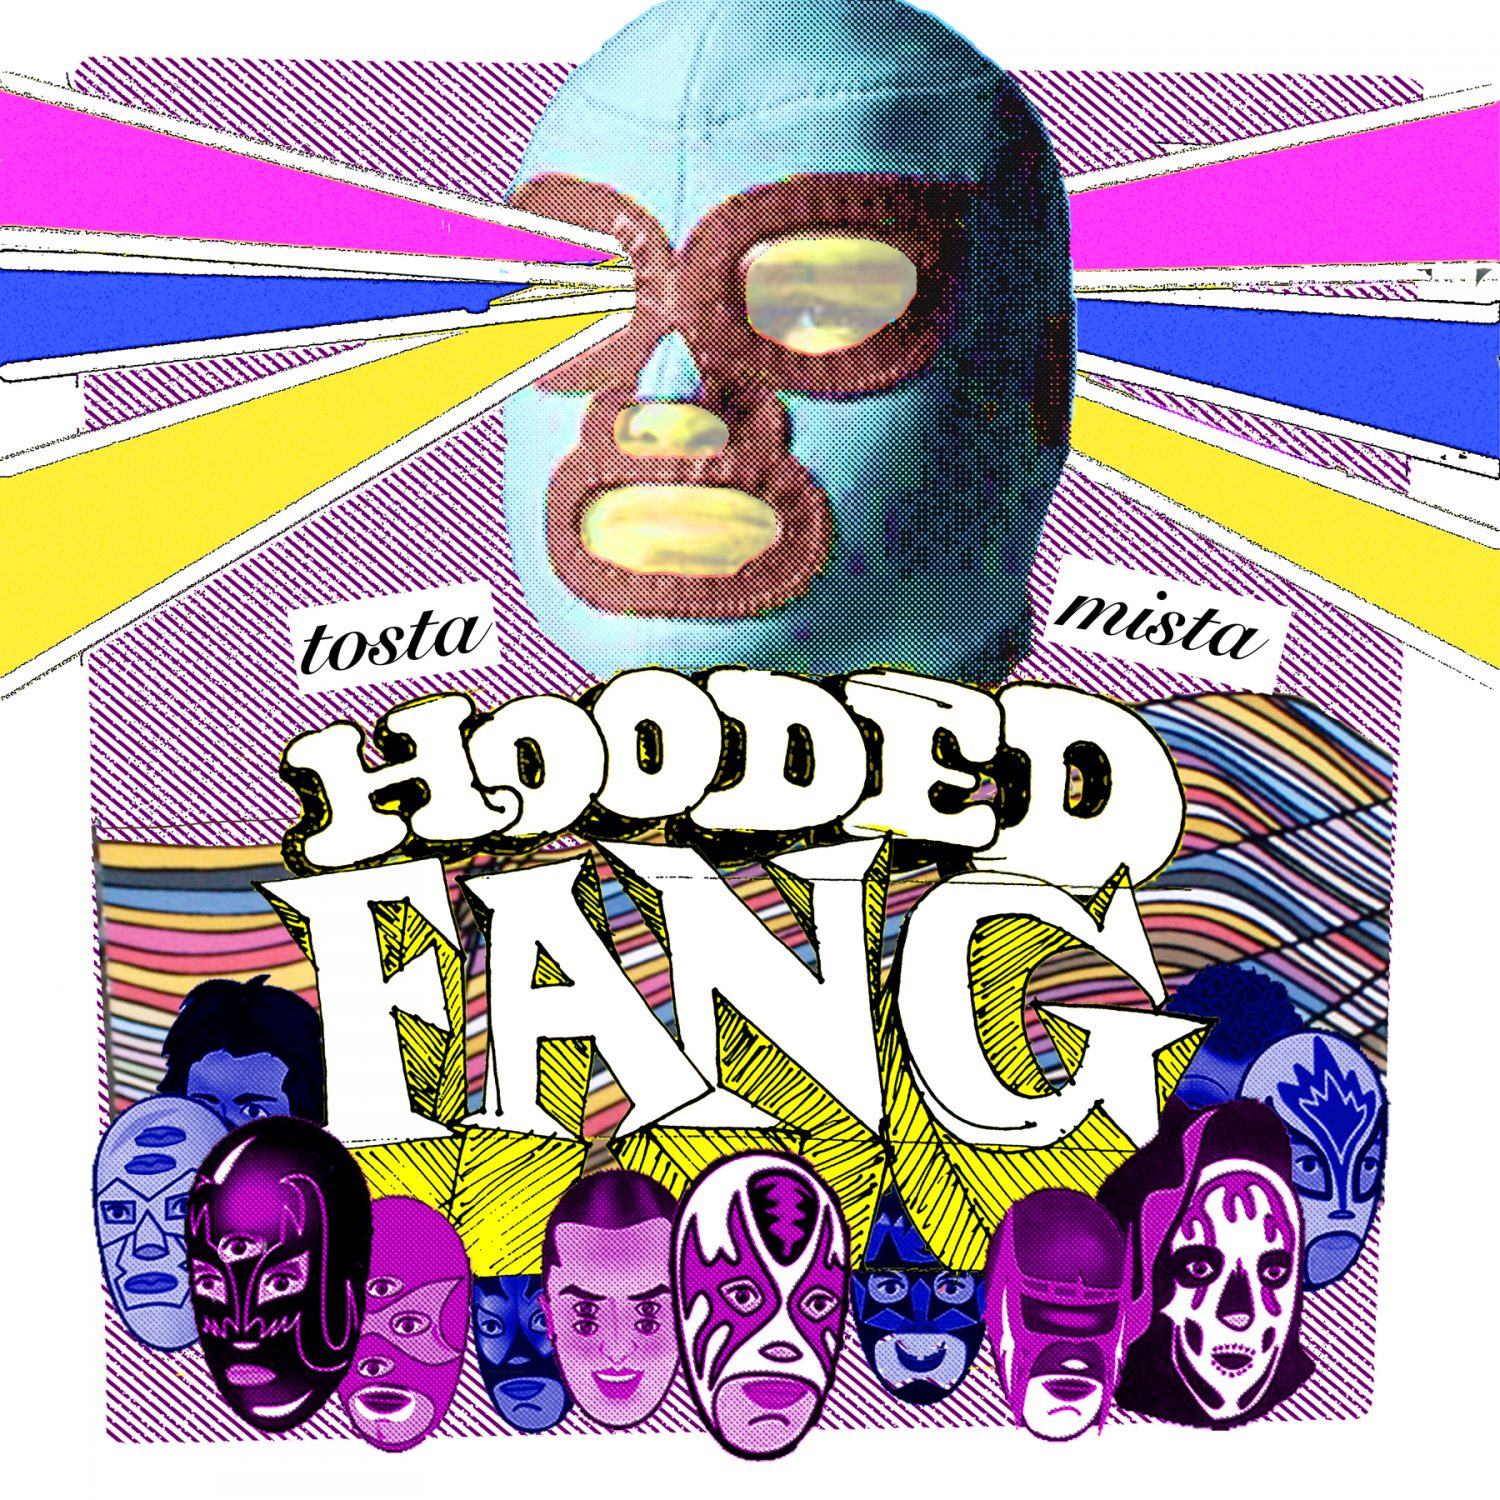 Hooded Fang - Tosta Mista (Album Cover)